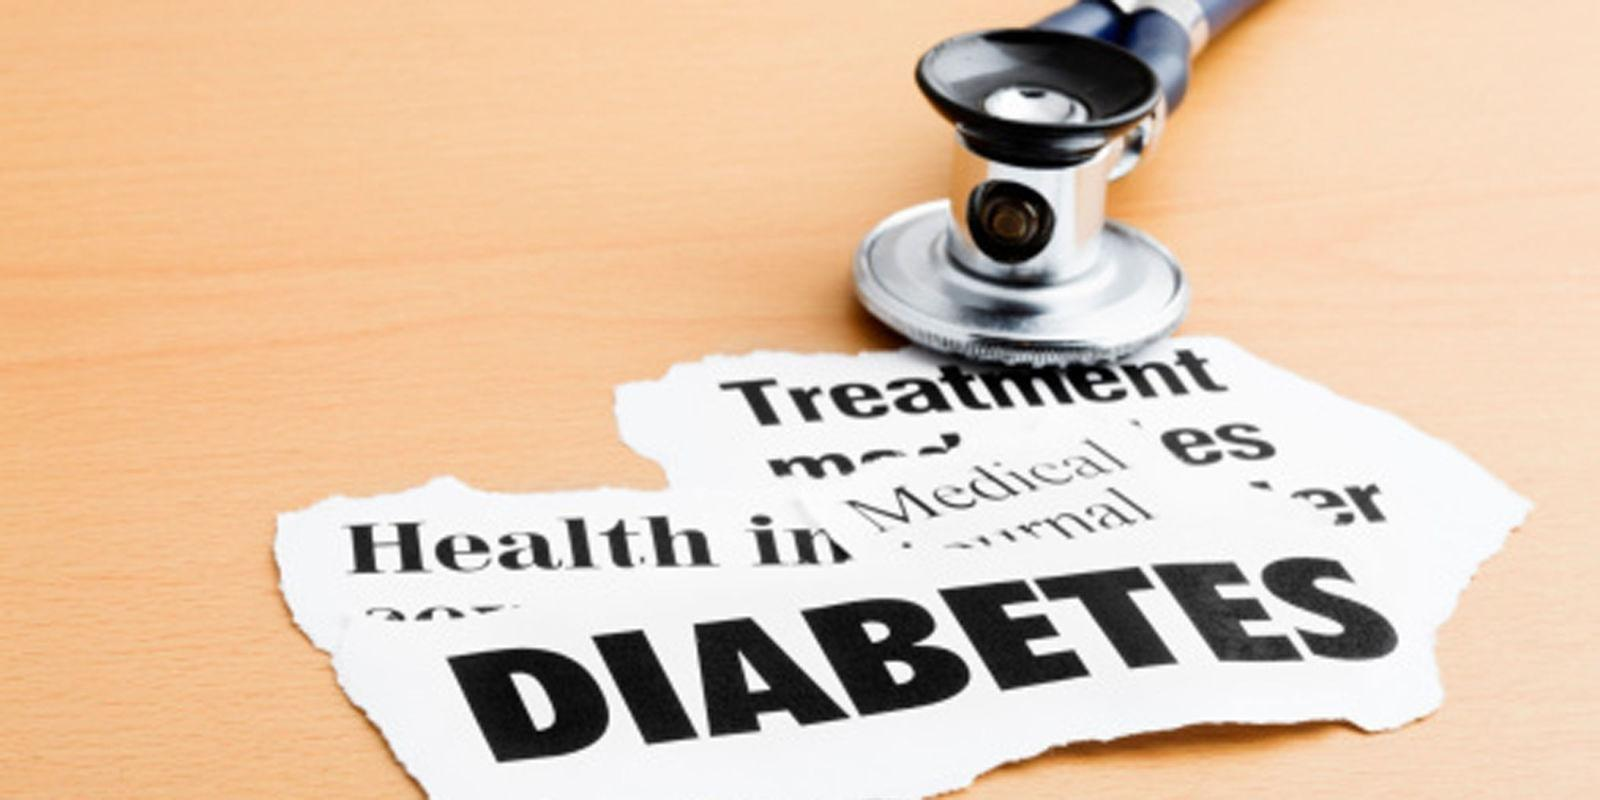 How Does Diabetes Affect Your Daily Life?